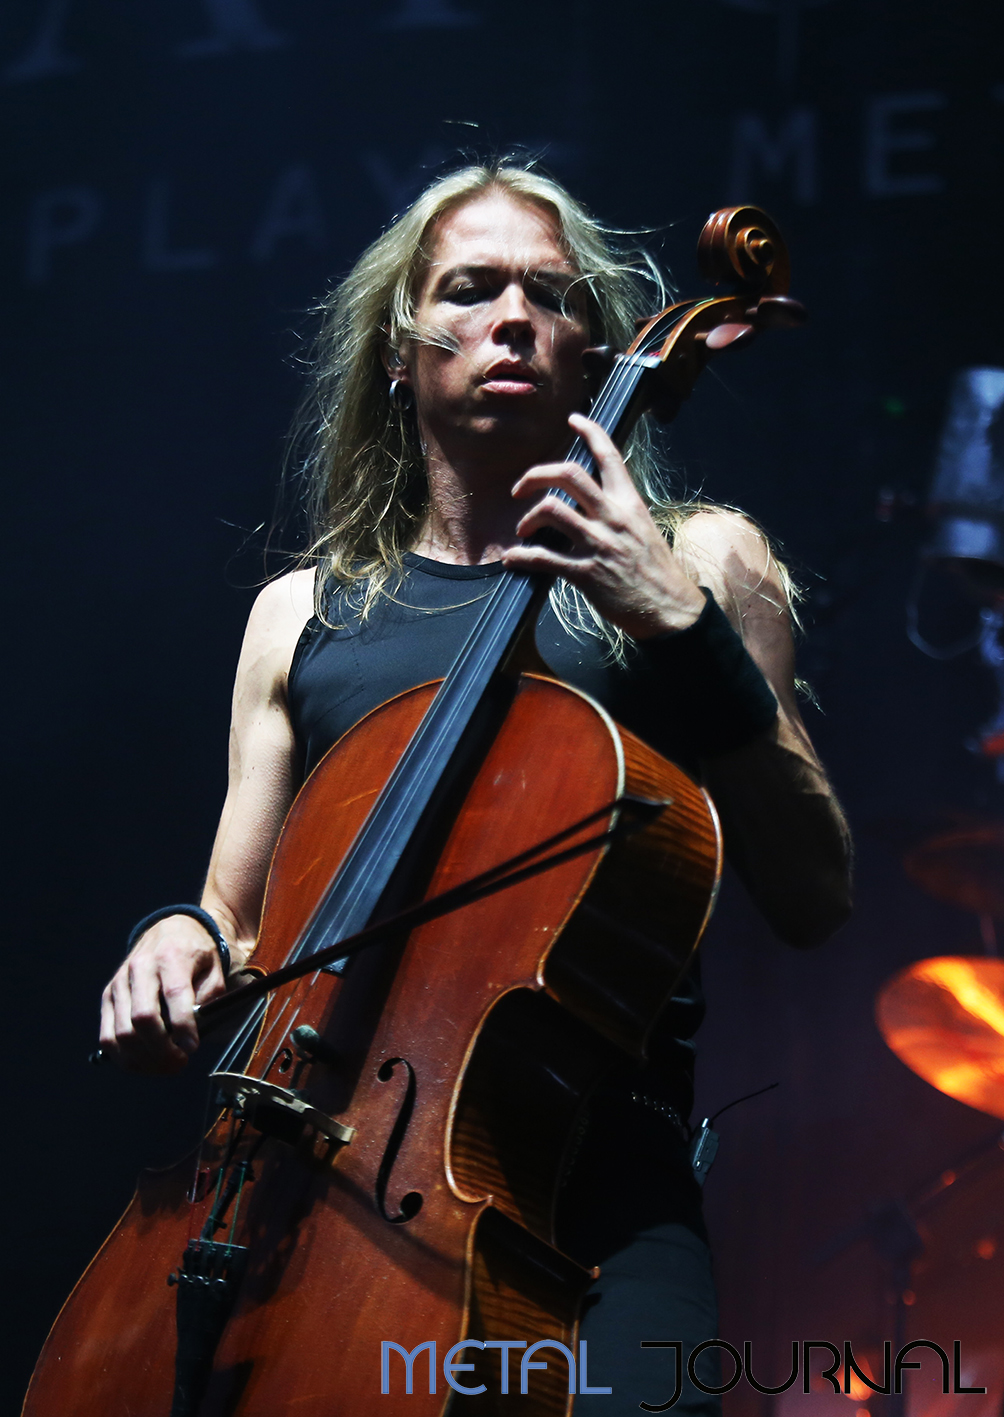 apocalyptica - leyendas del rock 2019 metal journal pic 6